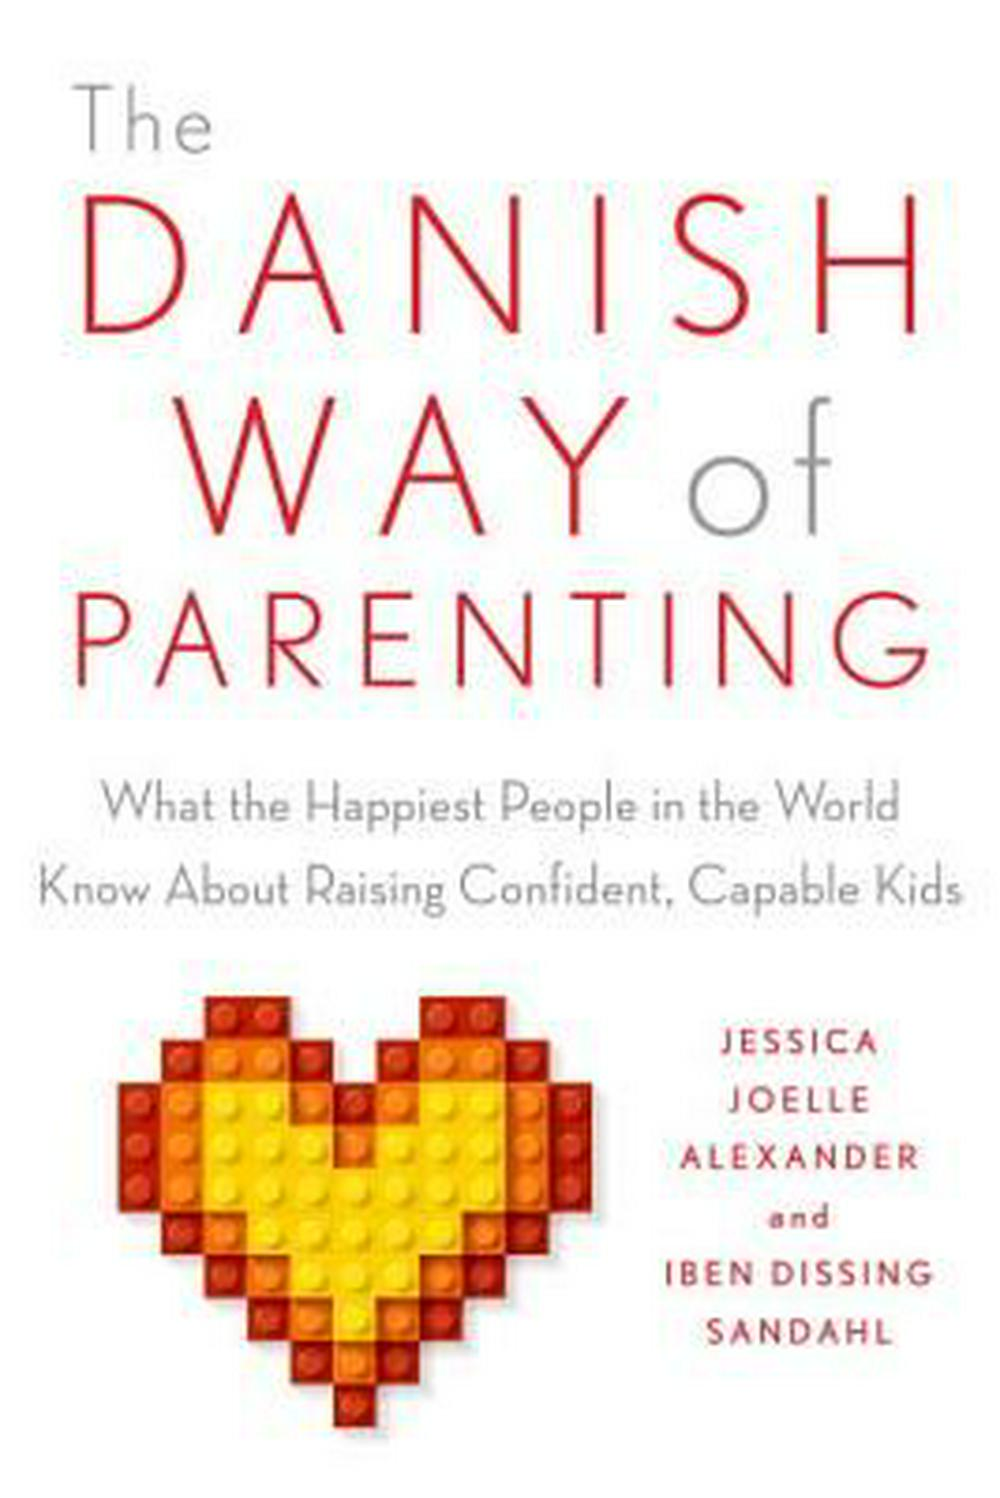 The Danish Way of Parenting: What the Happiest People in the World Know About Raising Confident, Capable Kids by Jessica Joelle Alexander, ISBN: 9780143111719